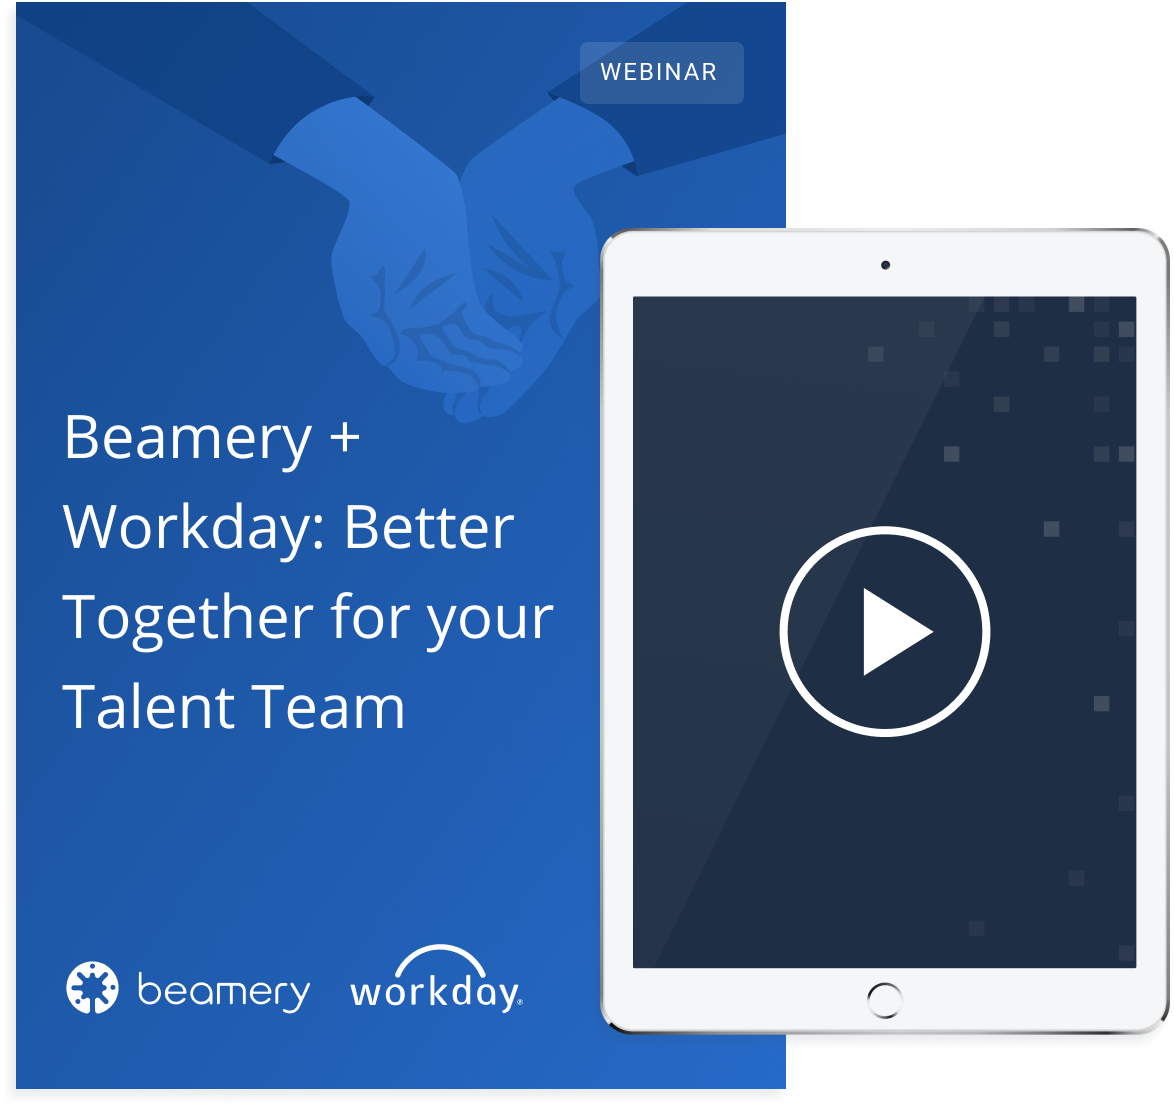 Beamery + Workday: Better Together for Your Talent Team